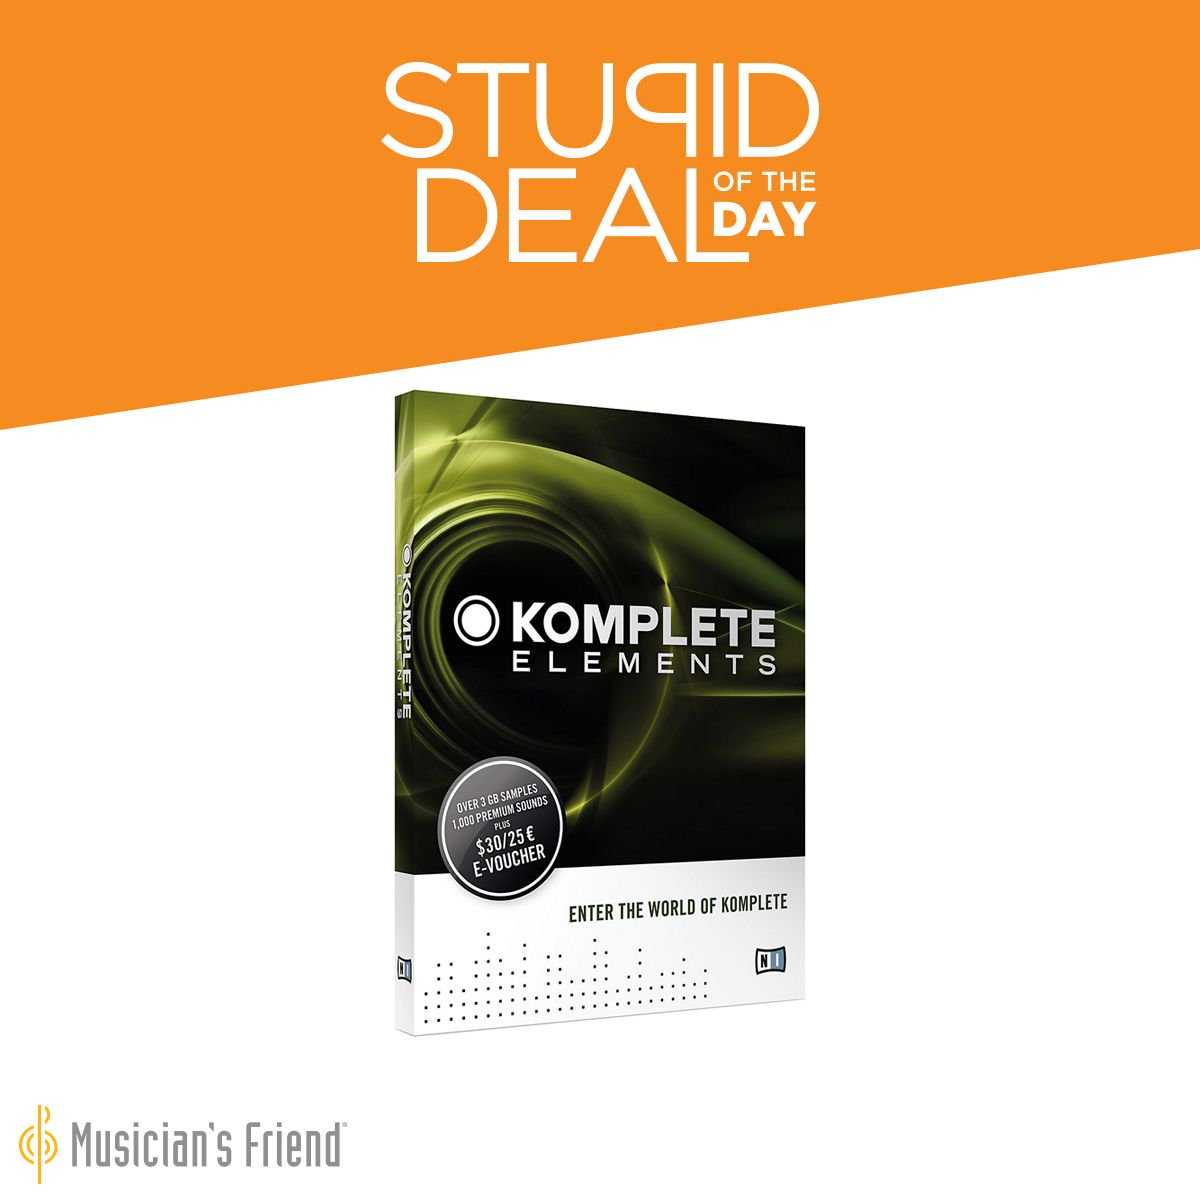 musician 39 s friend on twitter stupid deal of the day 1 11 17 native instruments komplete. Black Bedroom Furniture Sets. Home Design Ideas